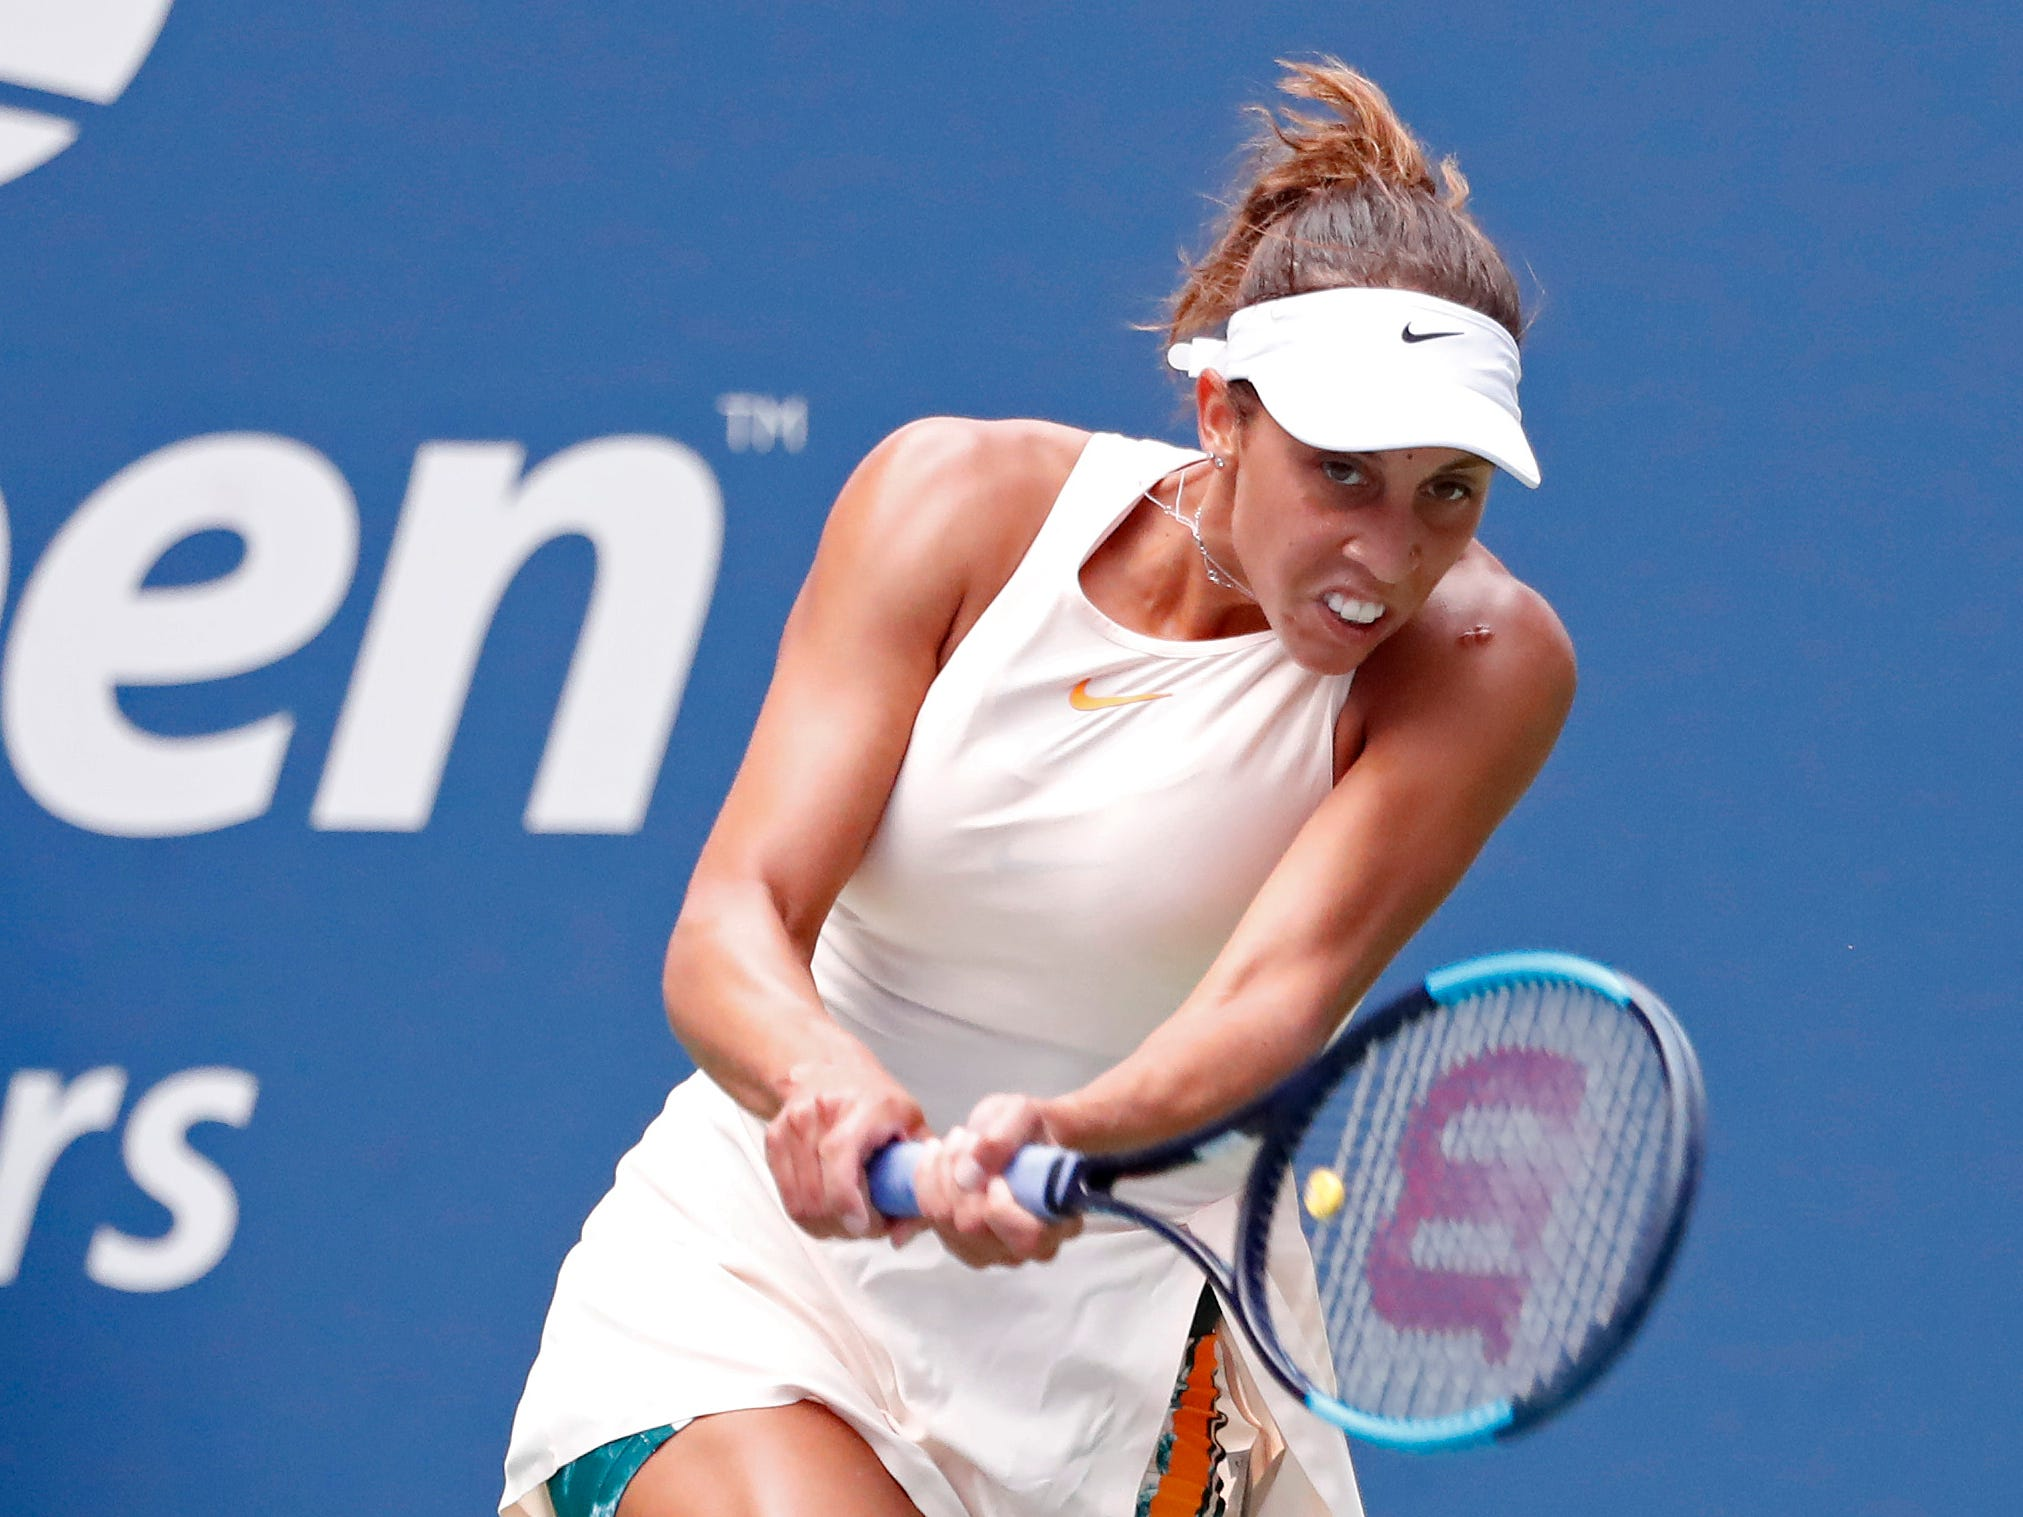 Madison Keys of the USA smacks smacks a backhand during her 6-4, 6-1 win against countrywoman Bernarda Pera.